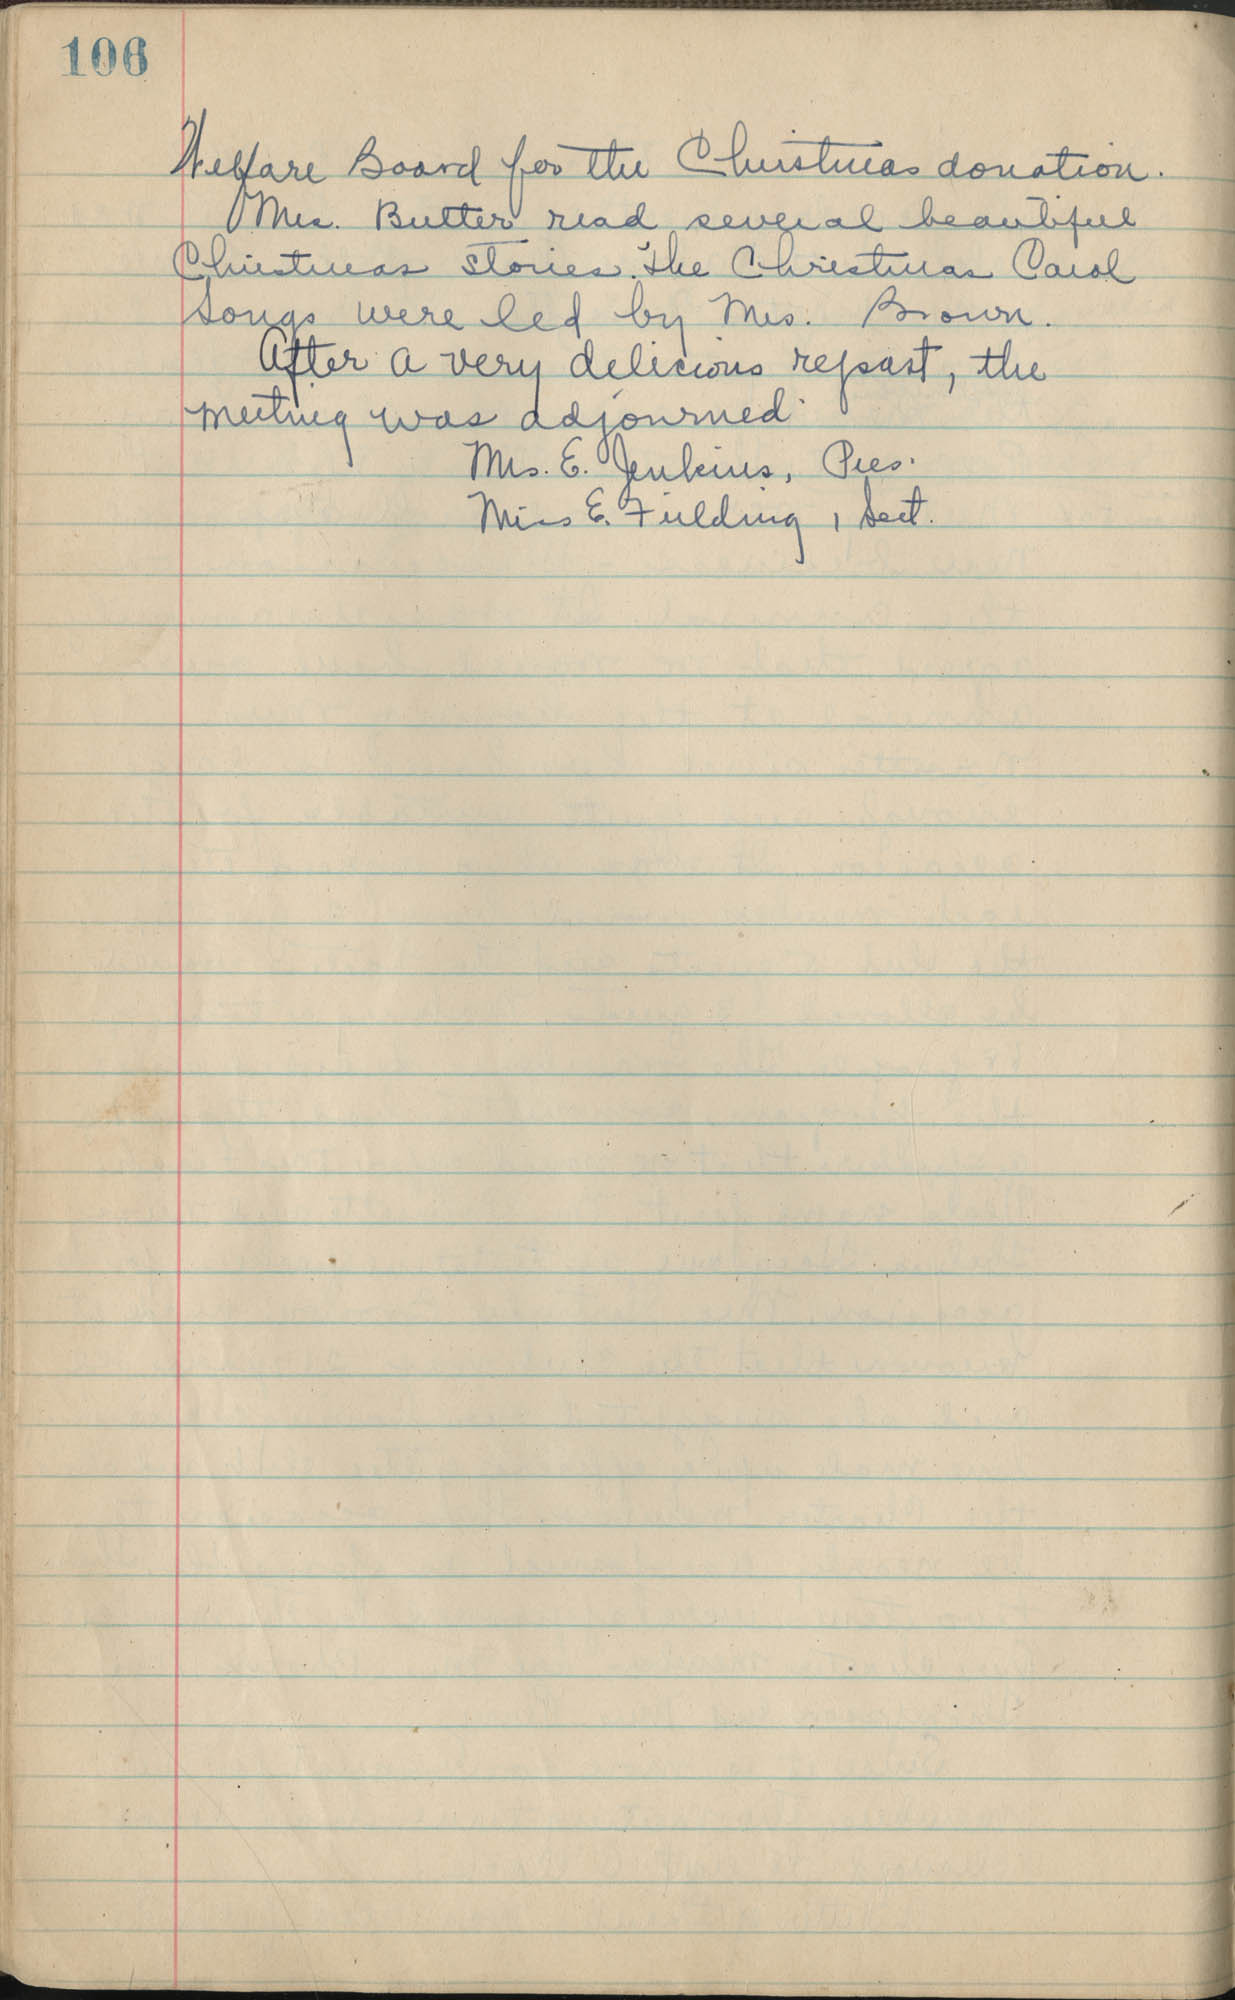 Minutes, Book Lovers' Club, 1944-1958, Page 106